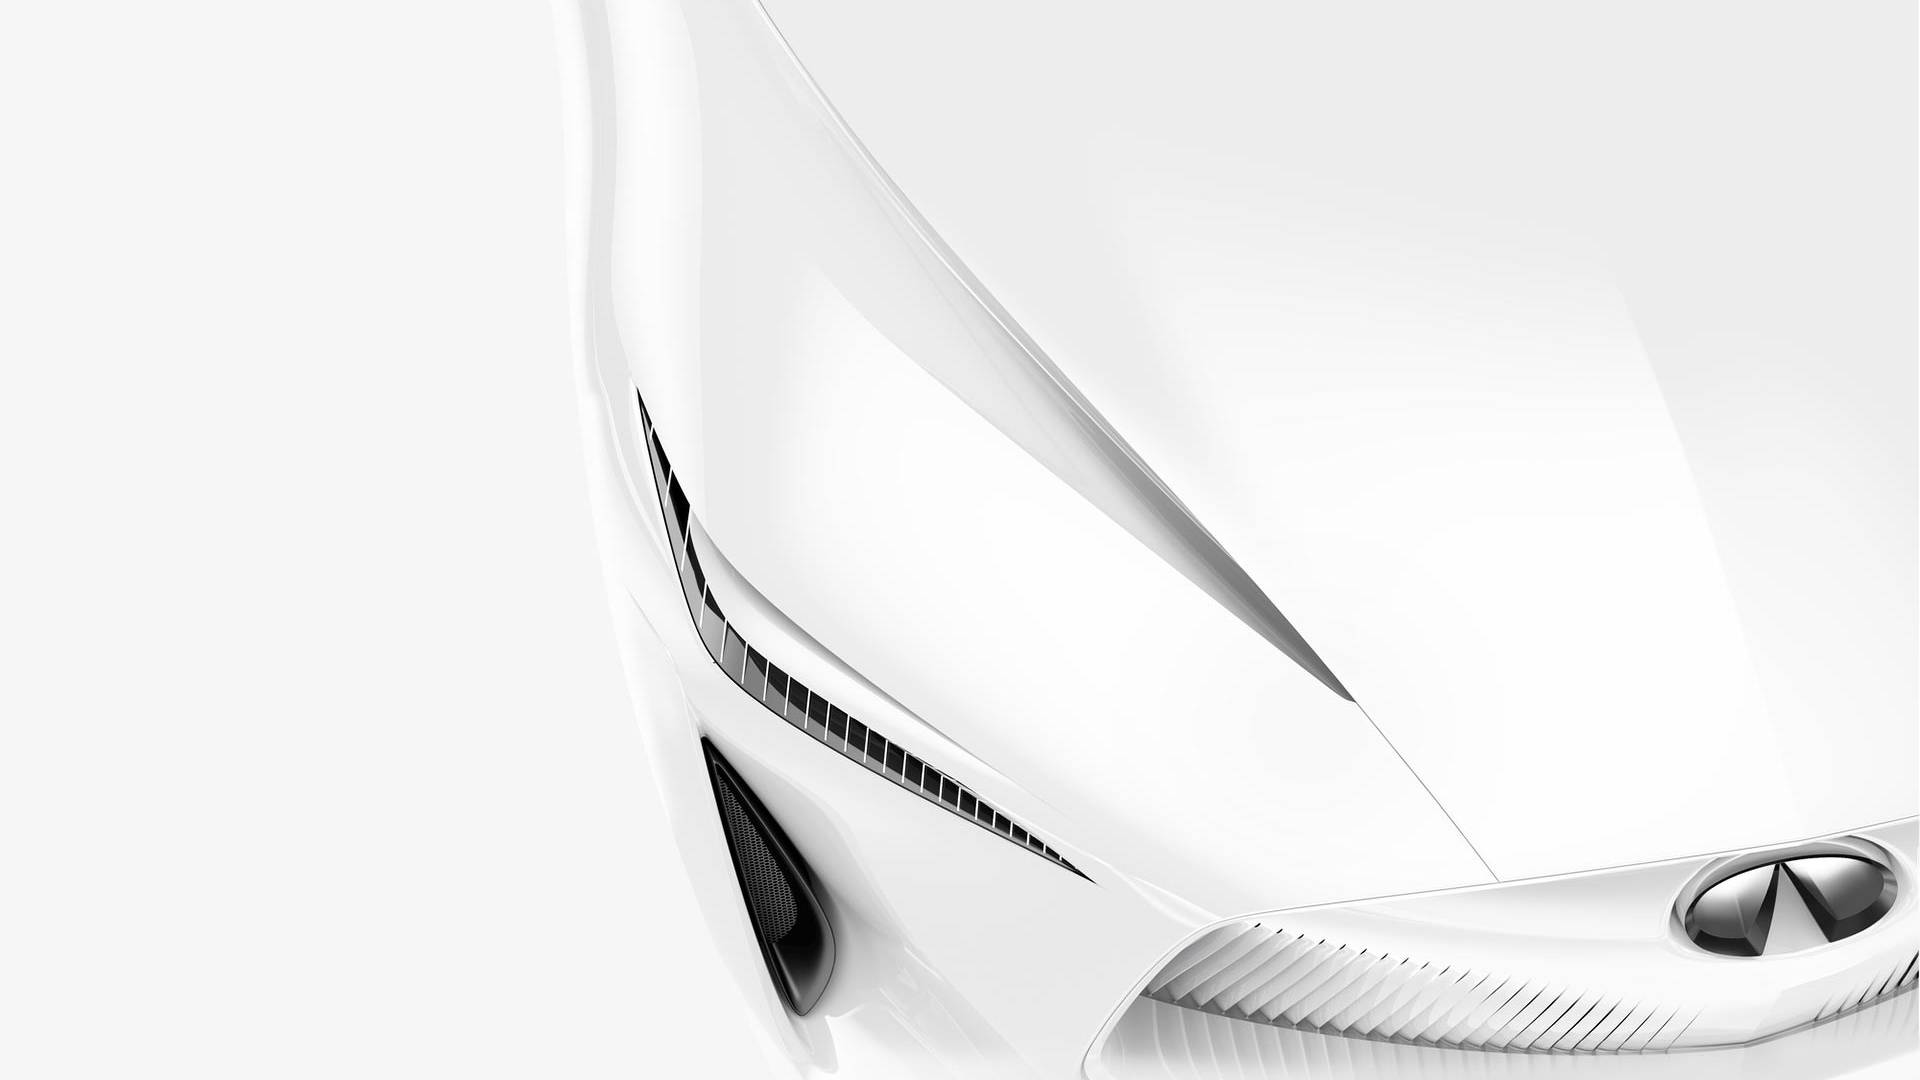 Infiniti Concept Car Coming to Detroit - Is It Electric?